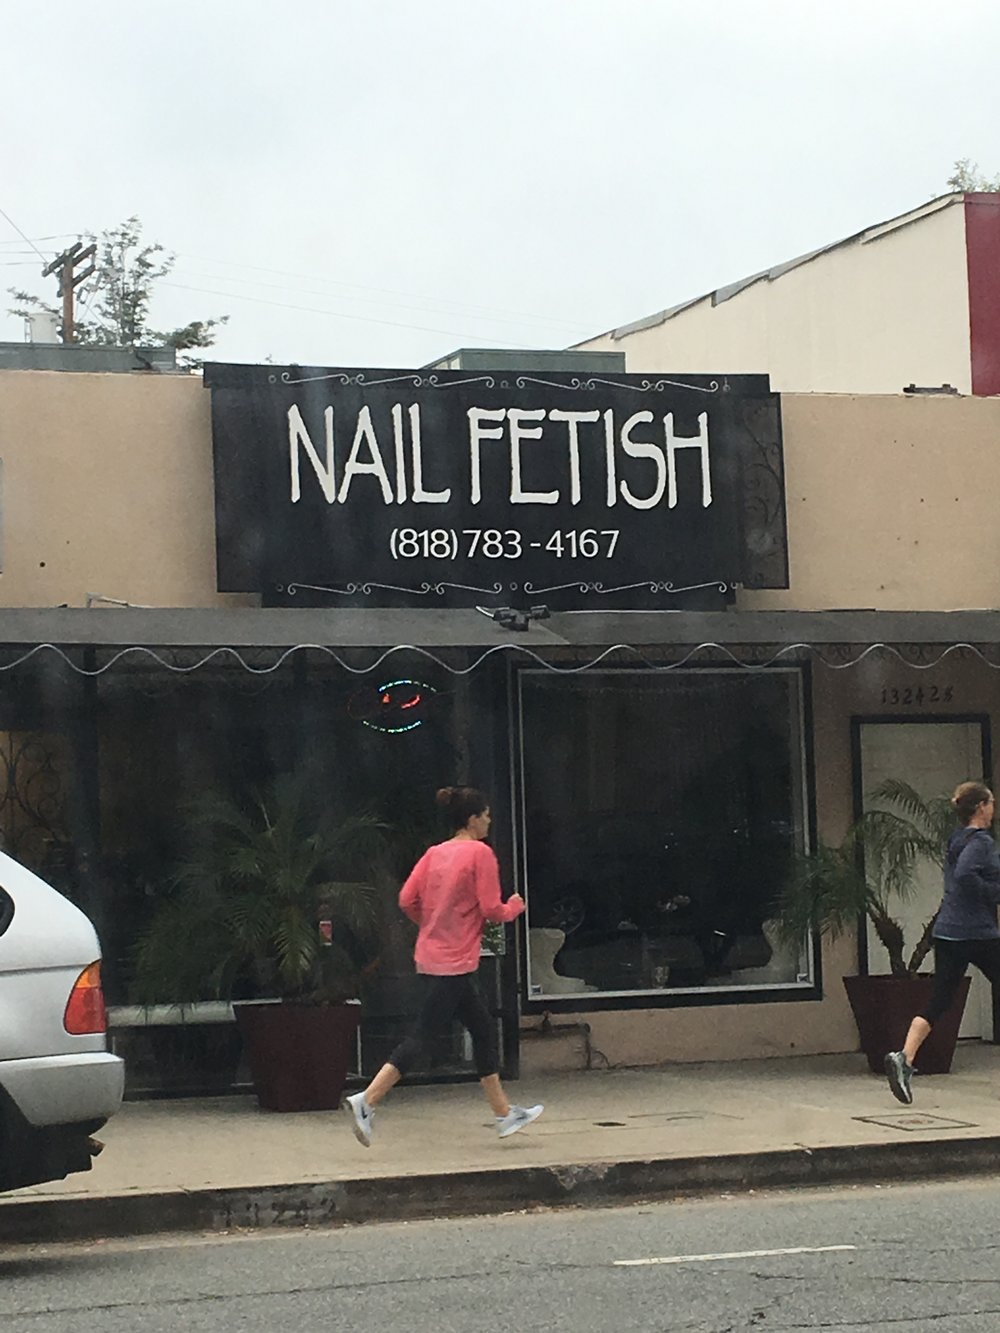 Very specialized type of foot fetish.